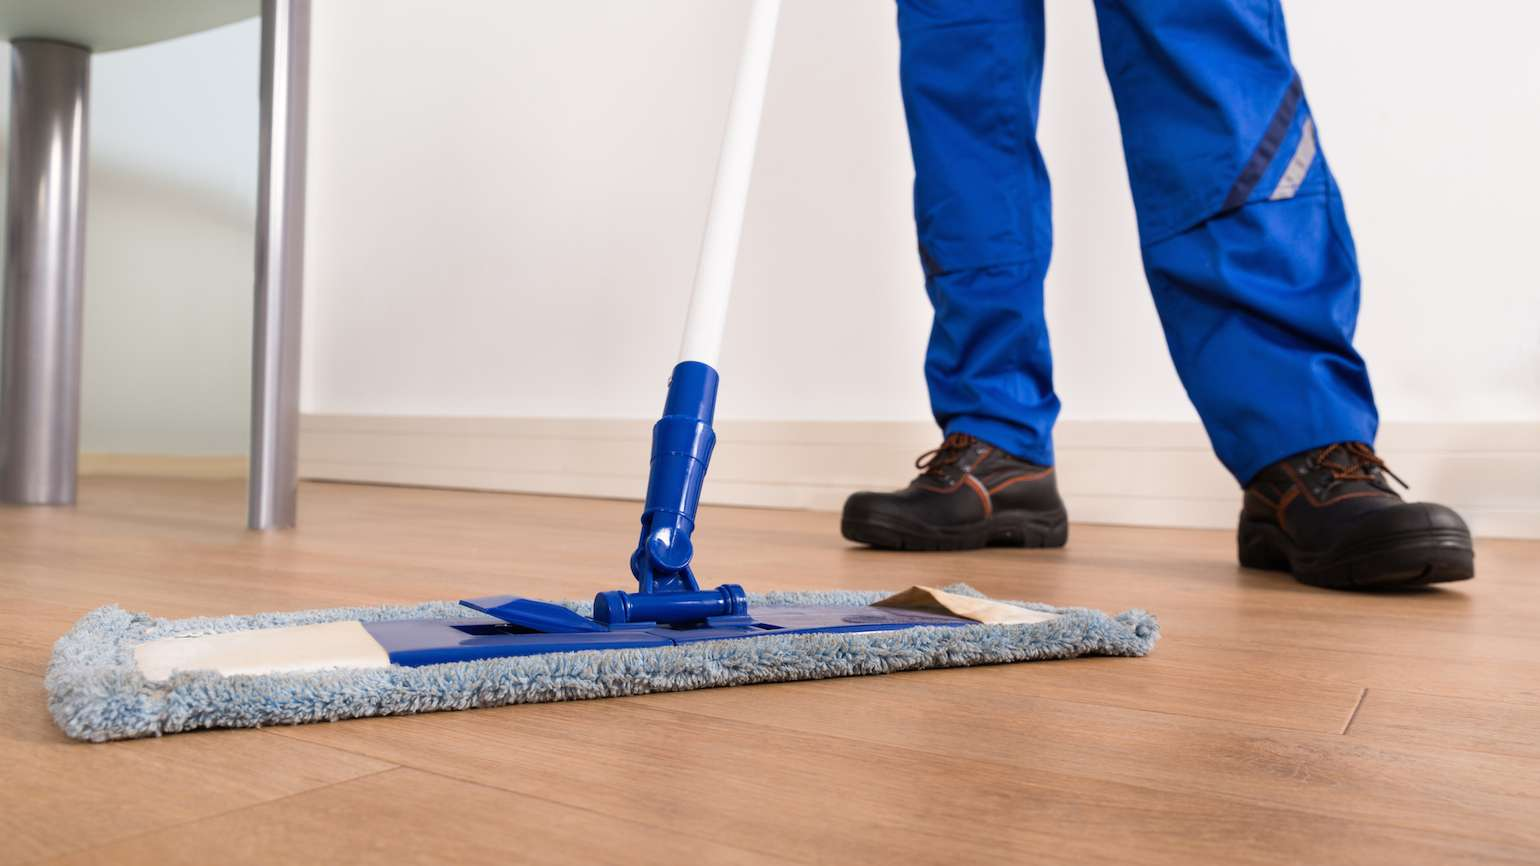 Bless those who mop floors.